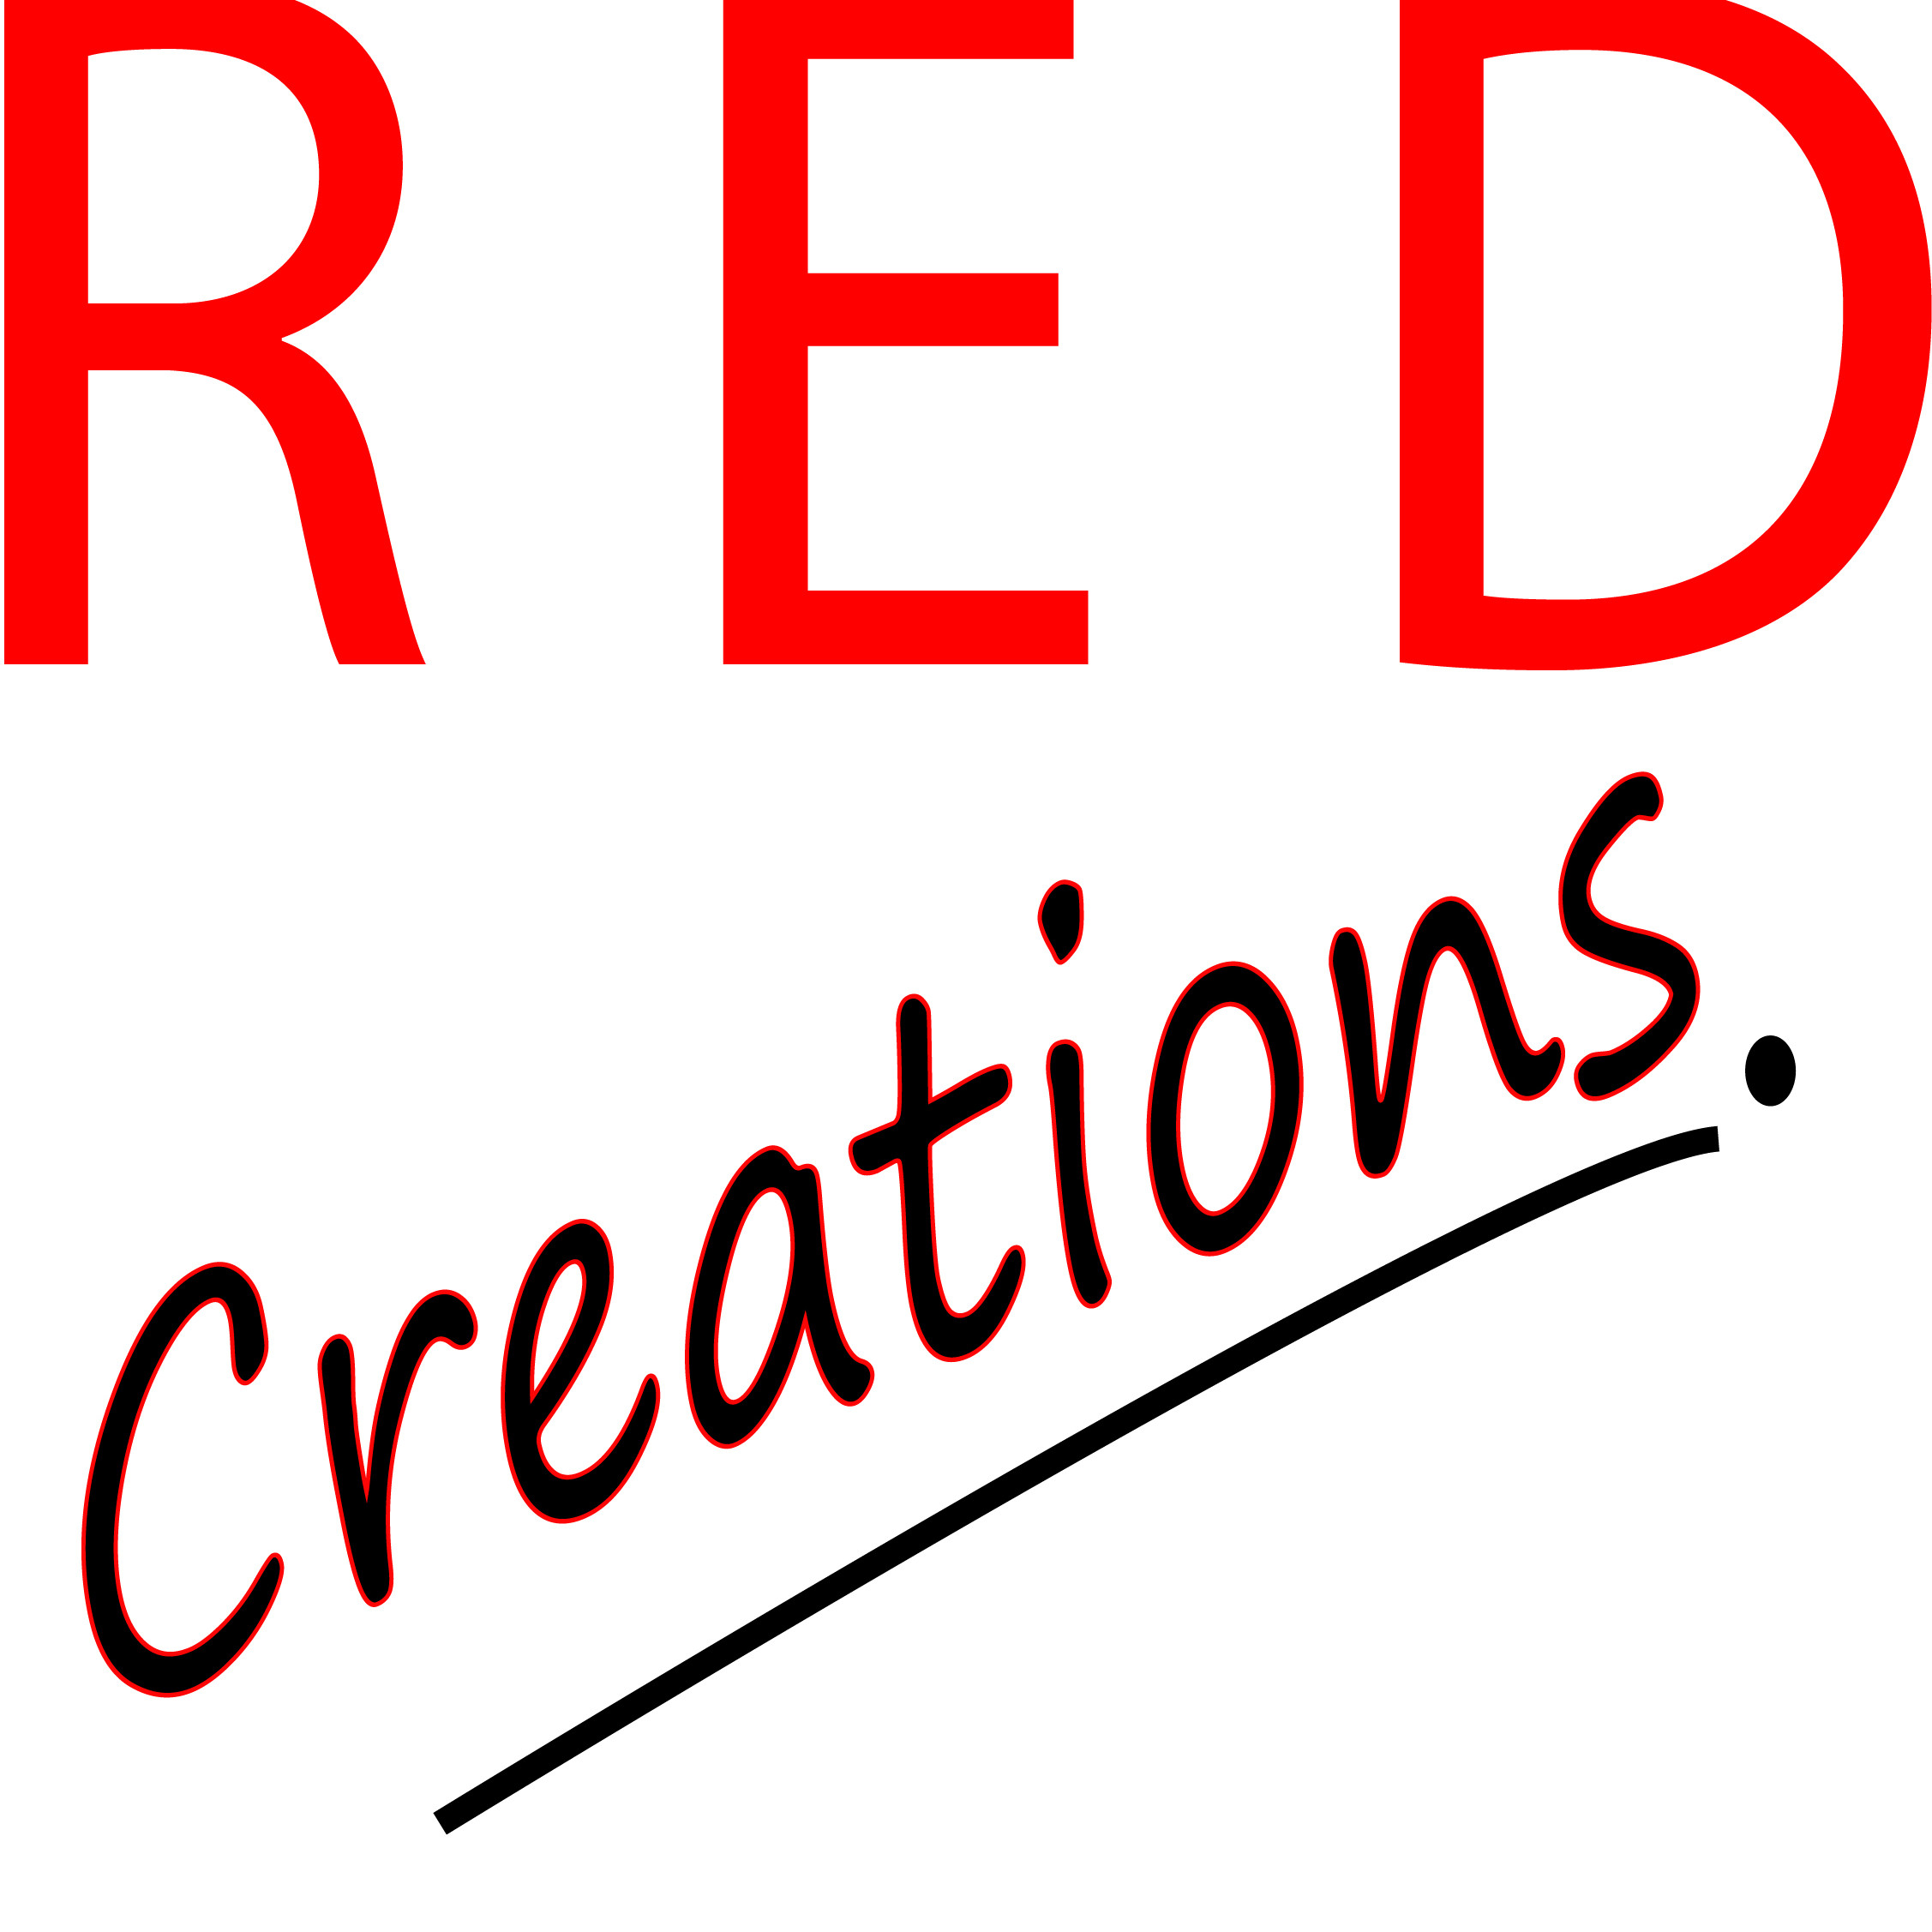 RedCreations's profile picture